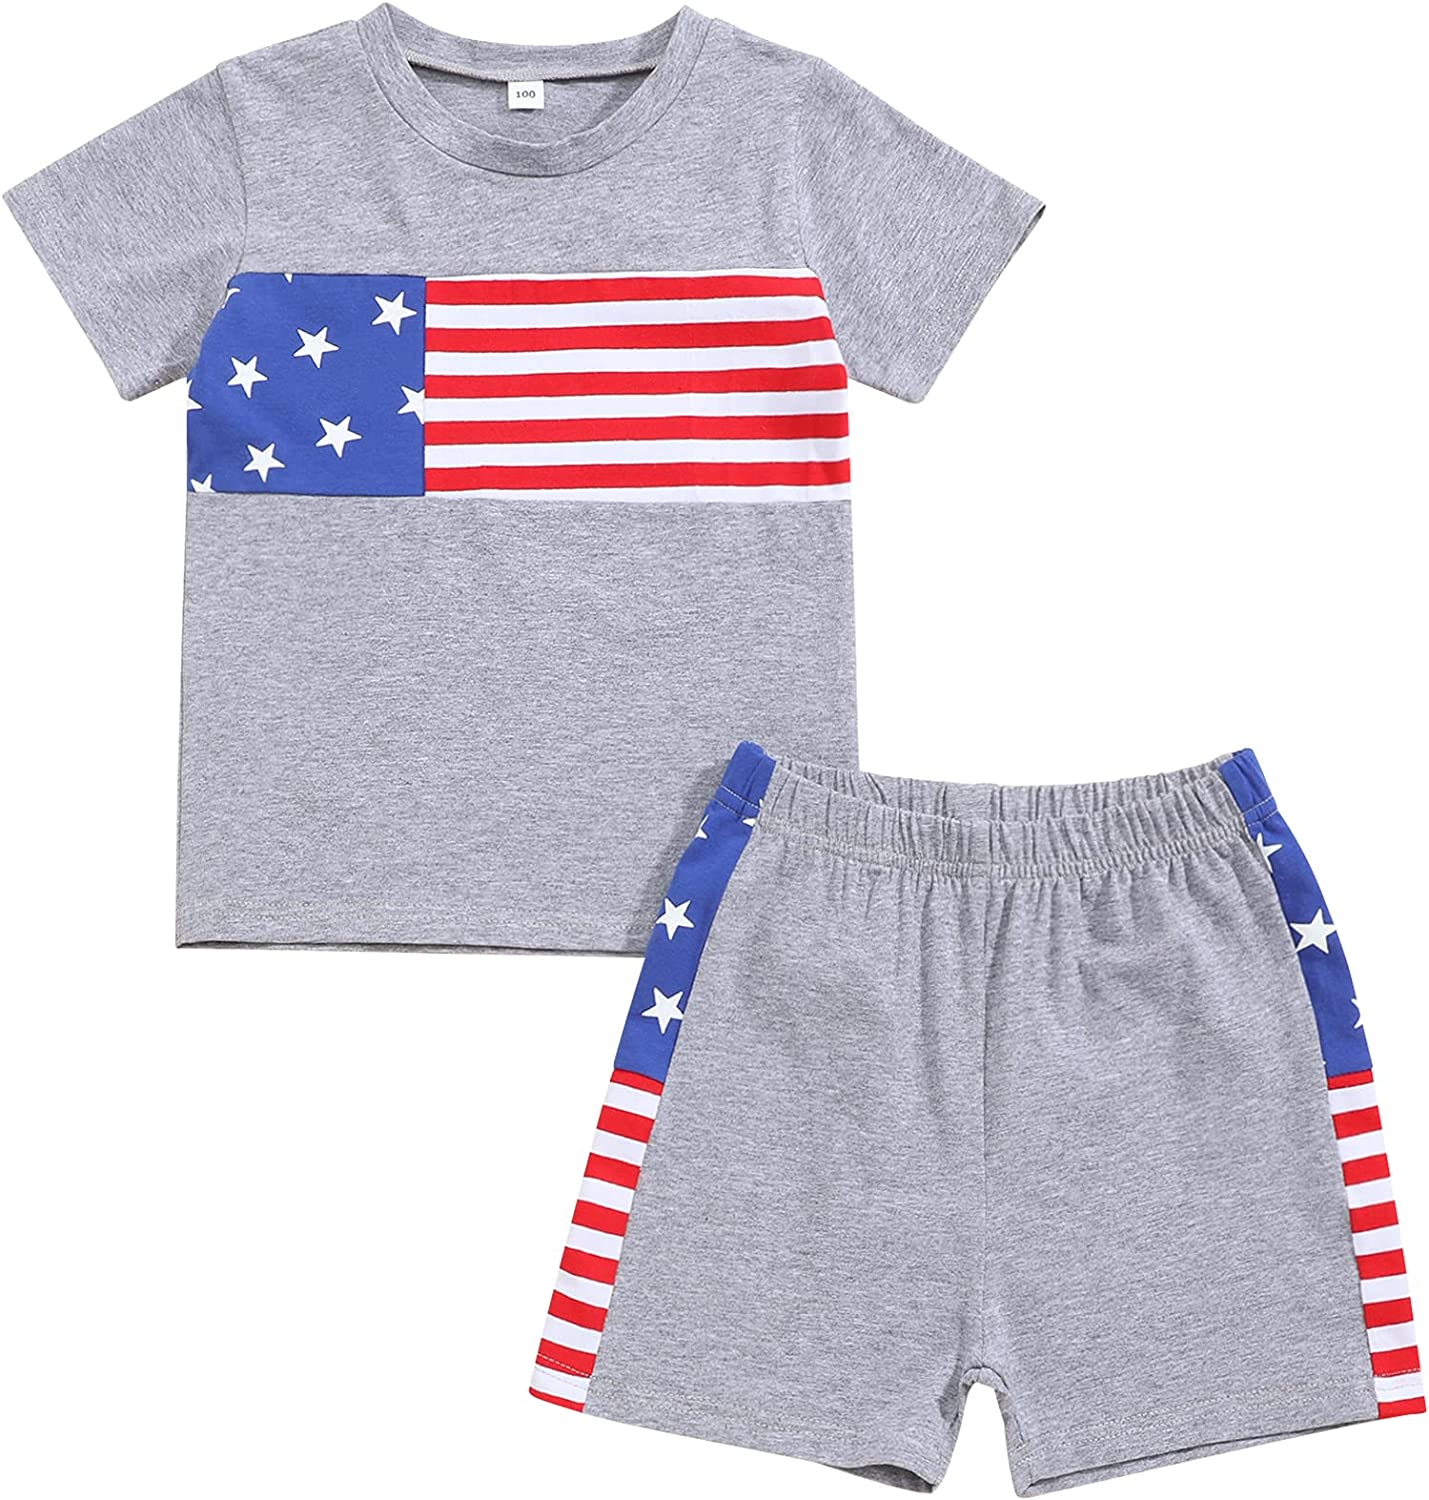 Toddler Infant Baby Boy 4th of July Clothes Striped Star American Flag T-Shirt Shorts Independece Day 2Pcs Outfit Sets